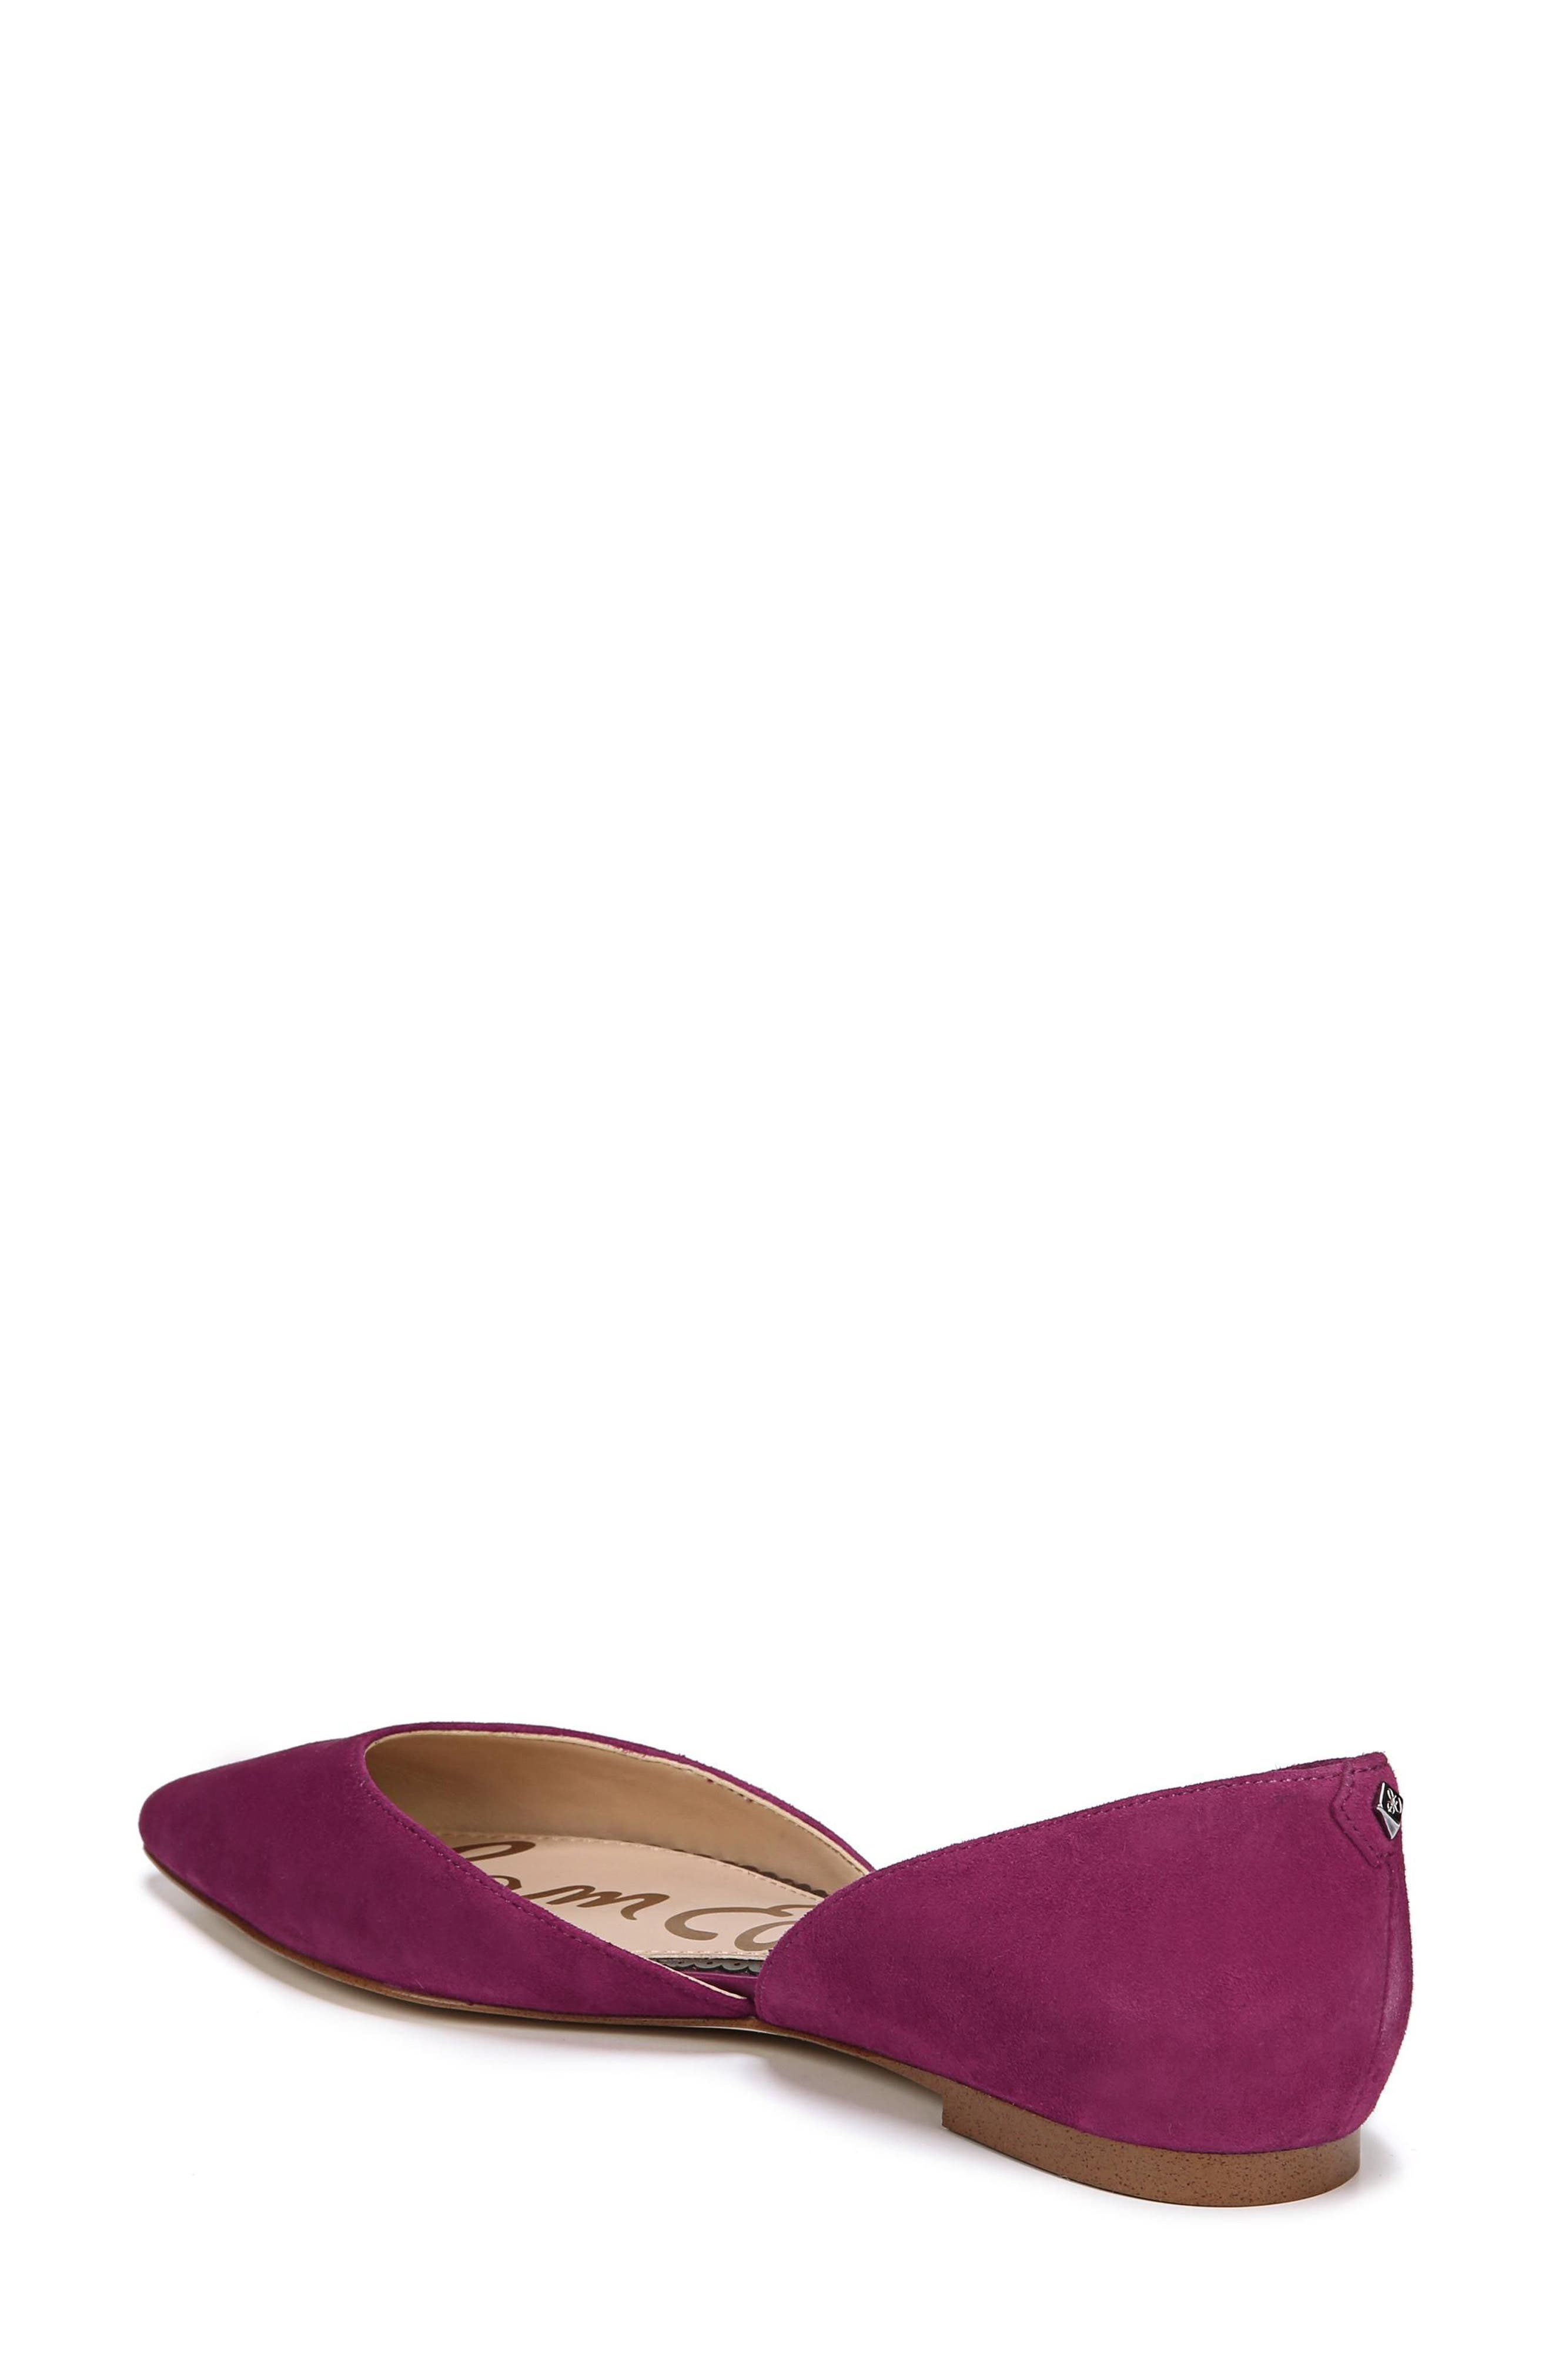 Rodney Pointy Toe d'Orsay Flat,                             Alternate thumbnail 2, color,                             PURPLE PLUM SUEDE